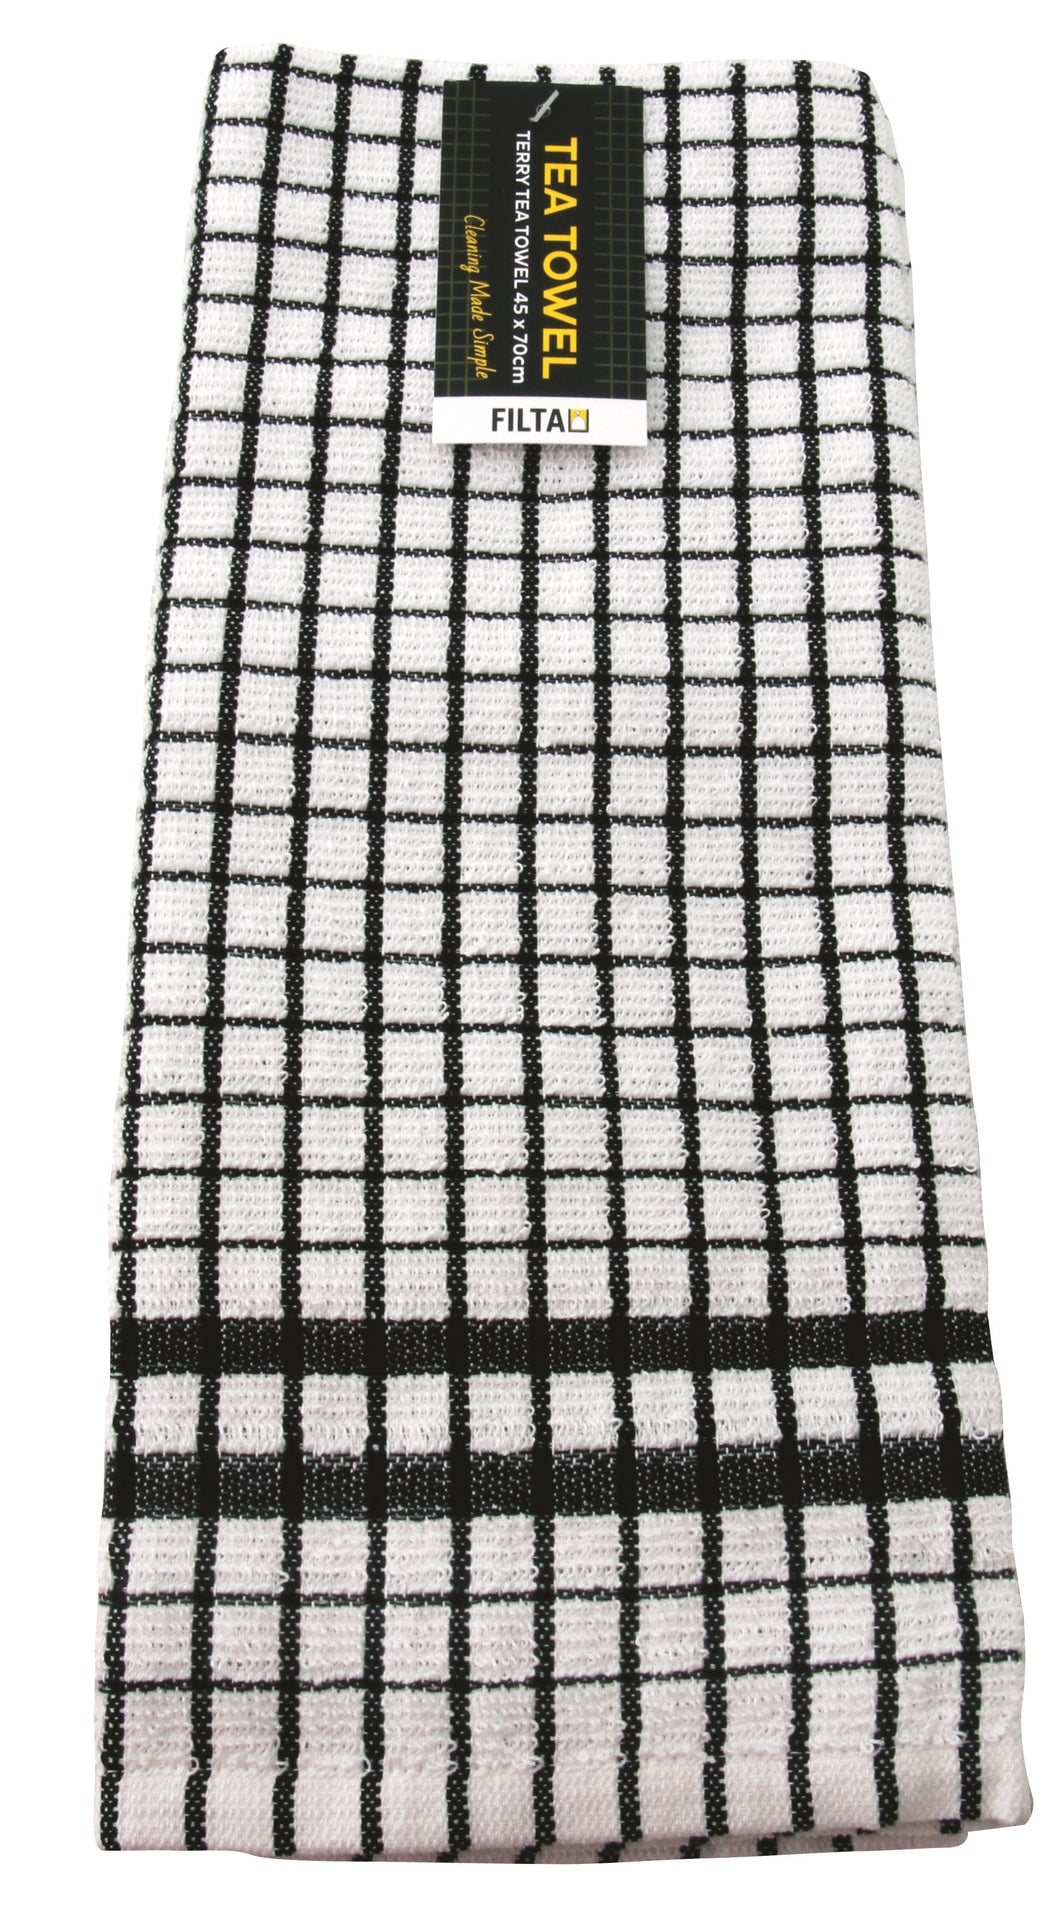 FILTA COTTON TEA TOWEL TERRY BLACK (45CM X 70CM)